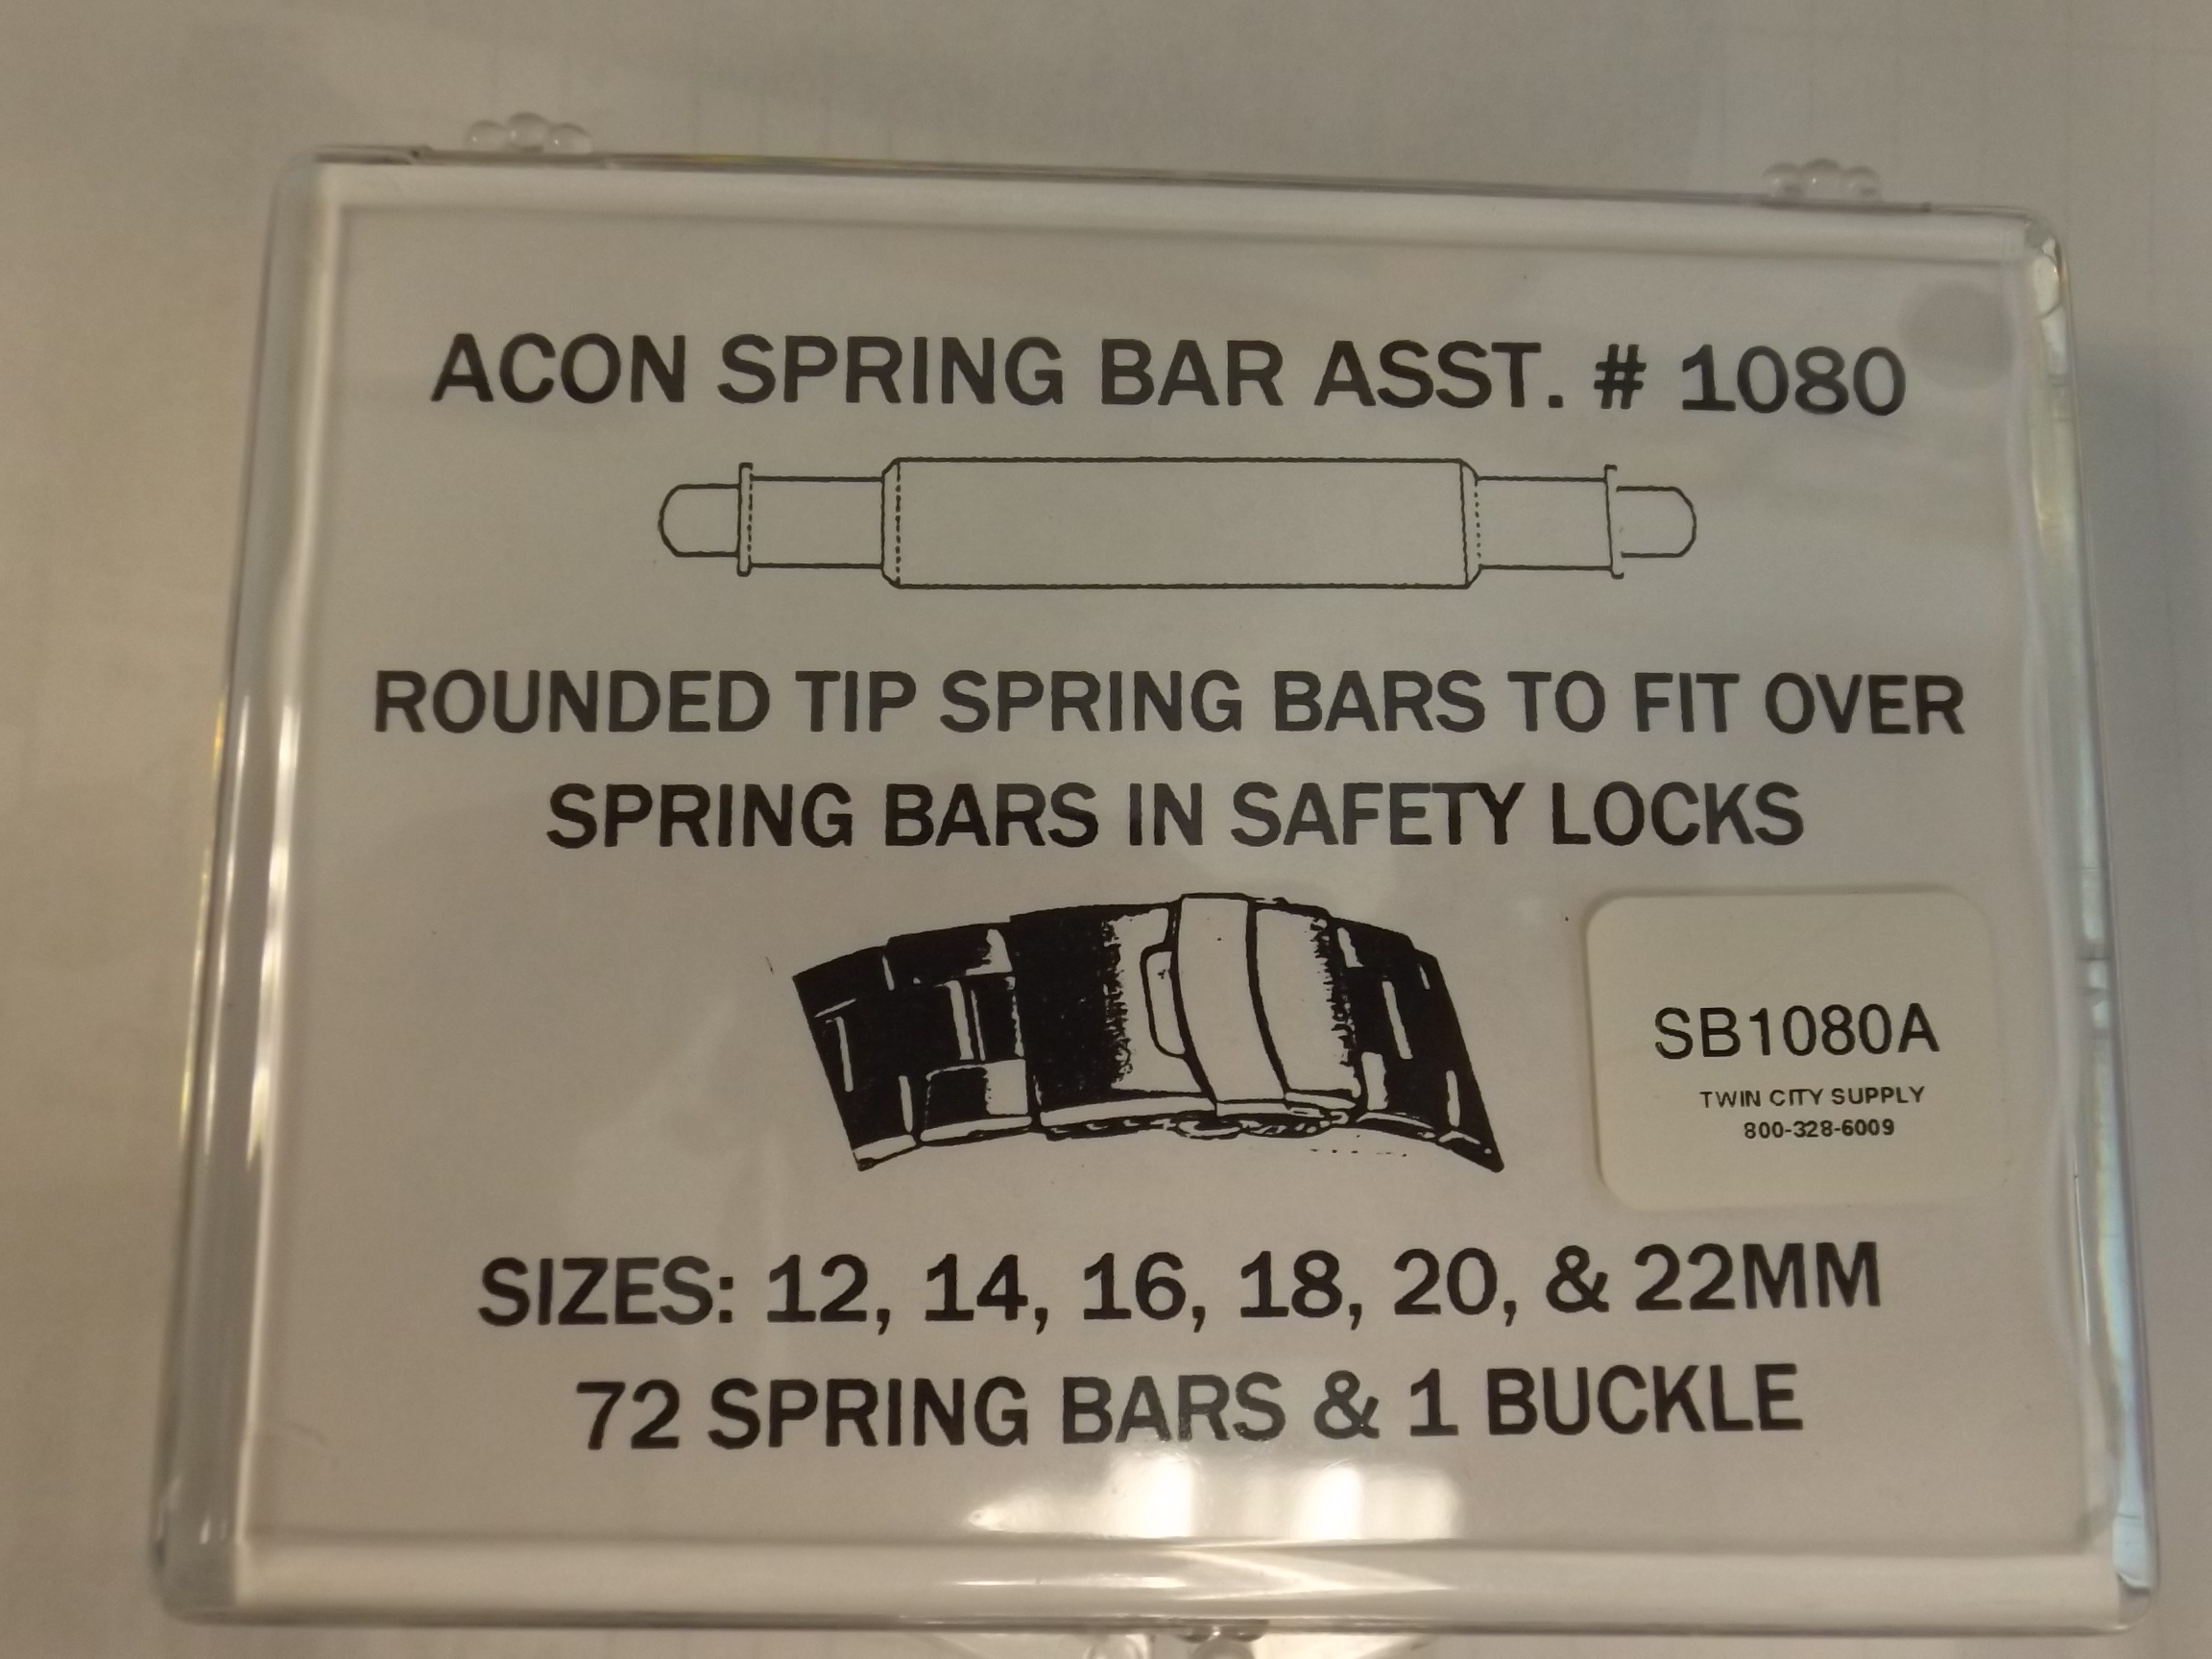 XSB1080A Acon Rounded Tip 72 piece Spring Bar Assortment